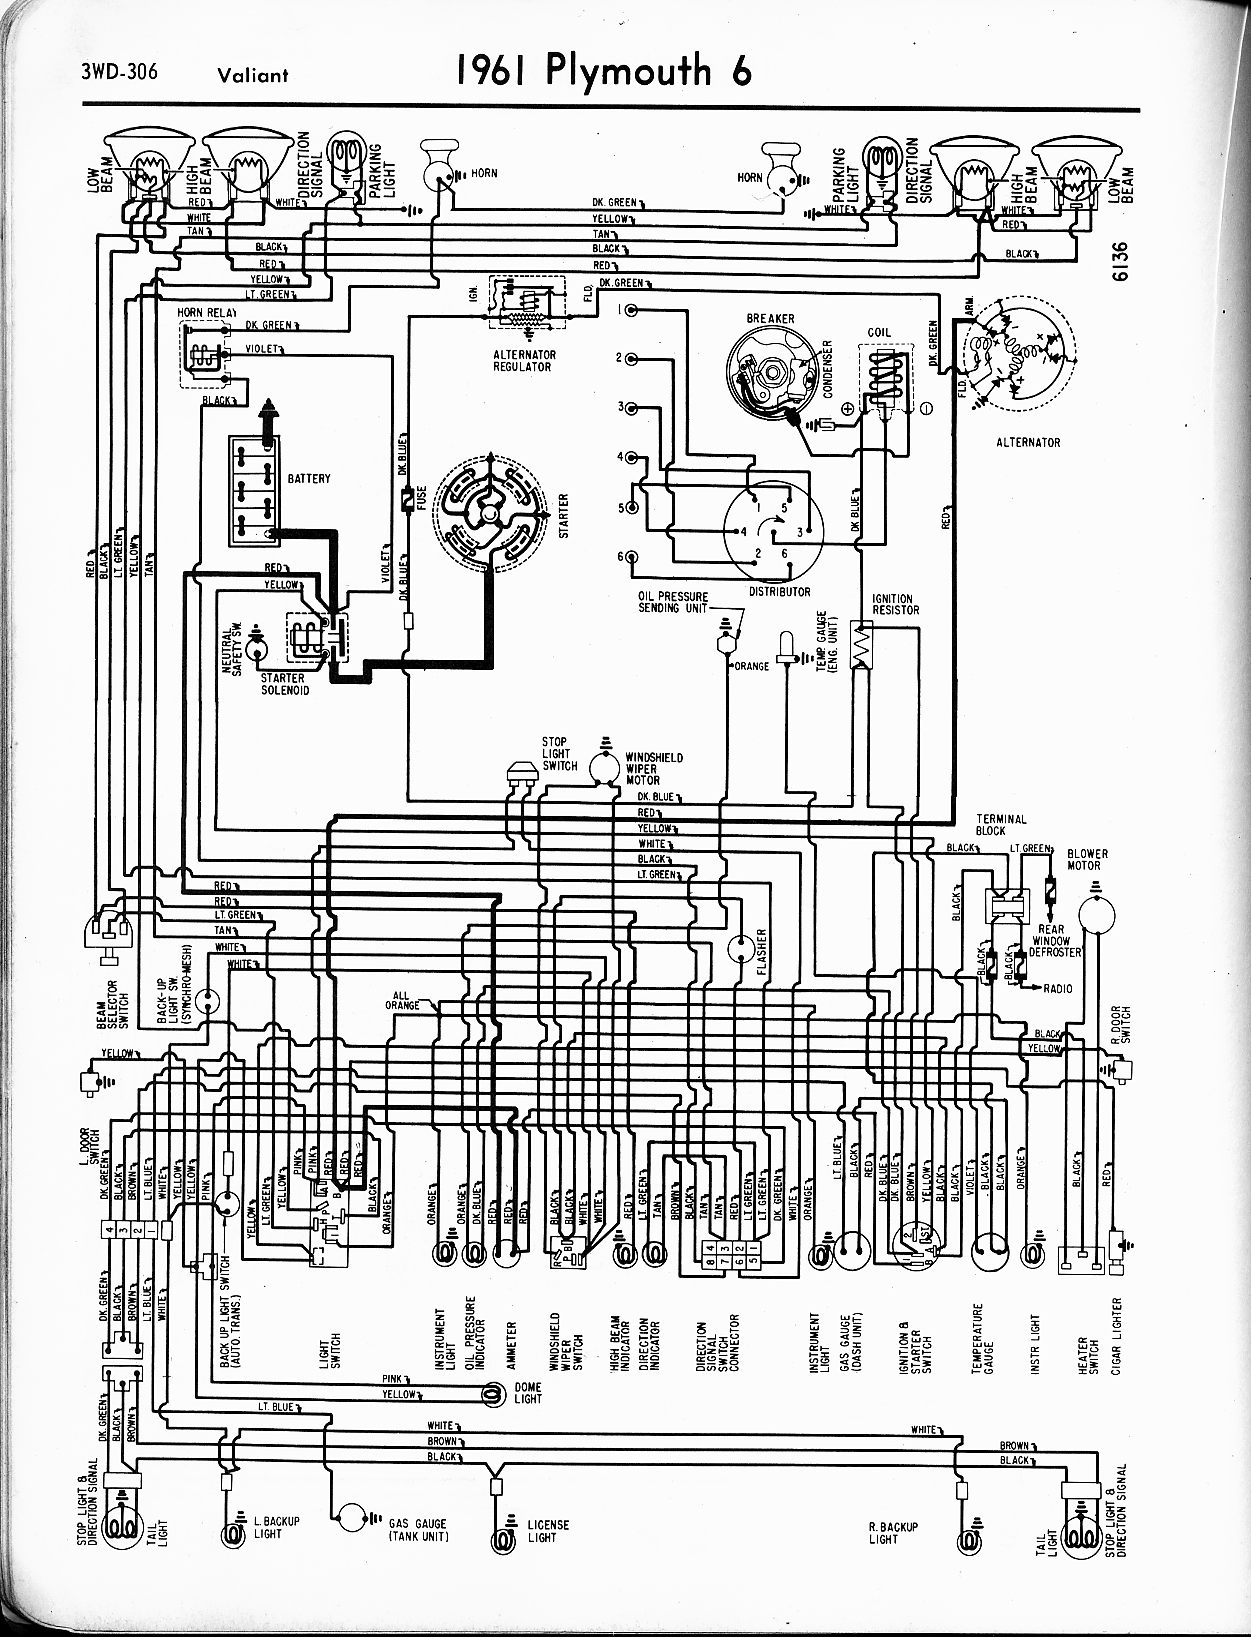 73 cuda wiring diagram wiring diagram m673 cuda wiring diagram wiring library 6a0rk ford mustang 1972 [ 1251 x 1637 Pixel ]